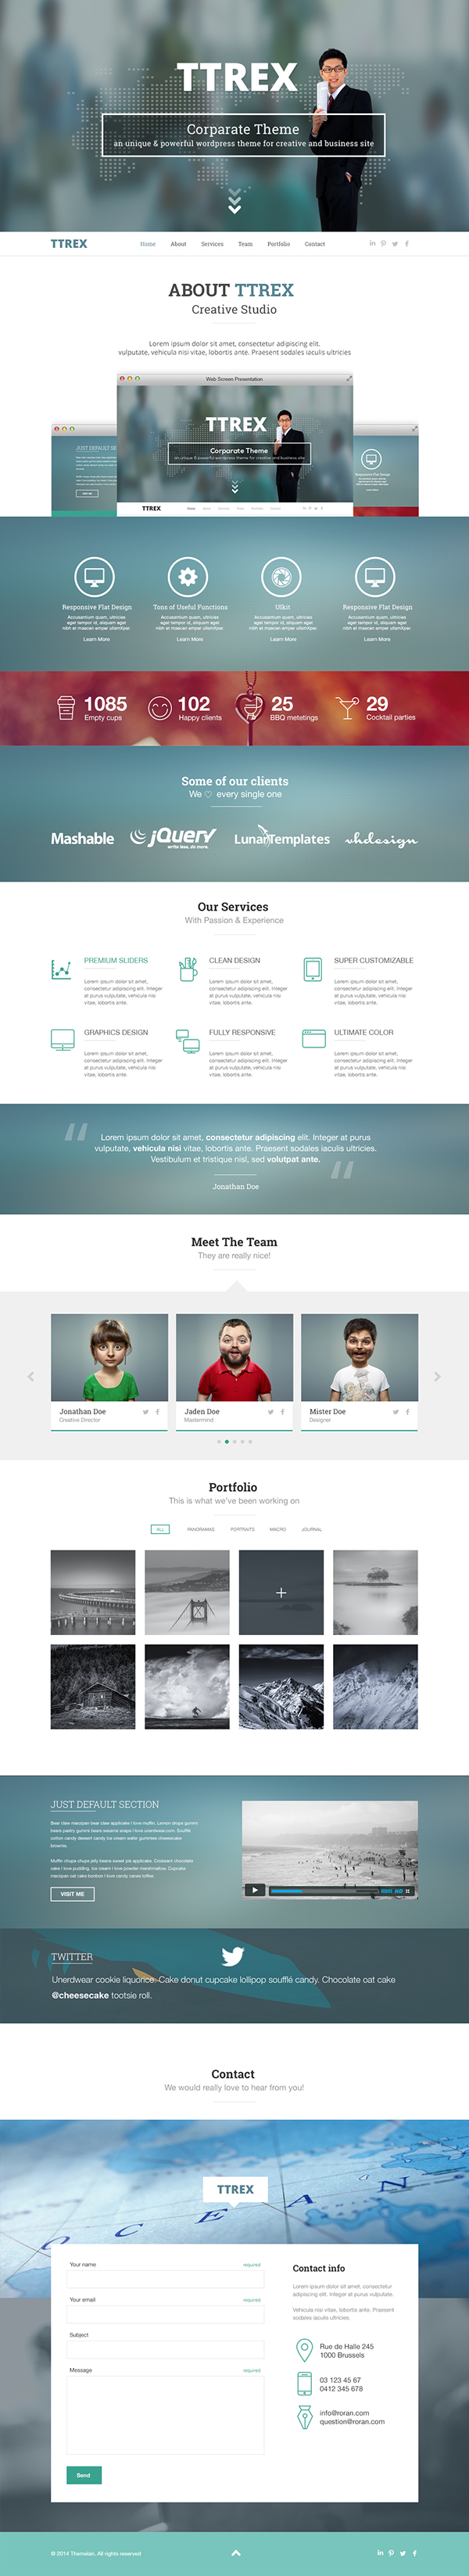 Expression Web Templates Free Download